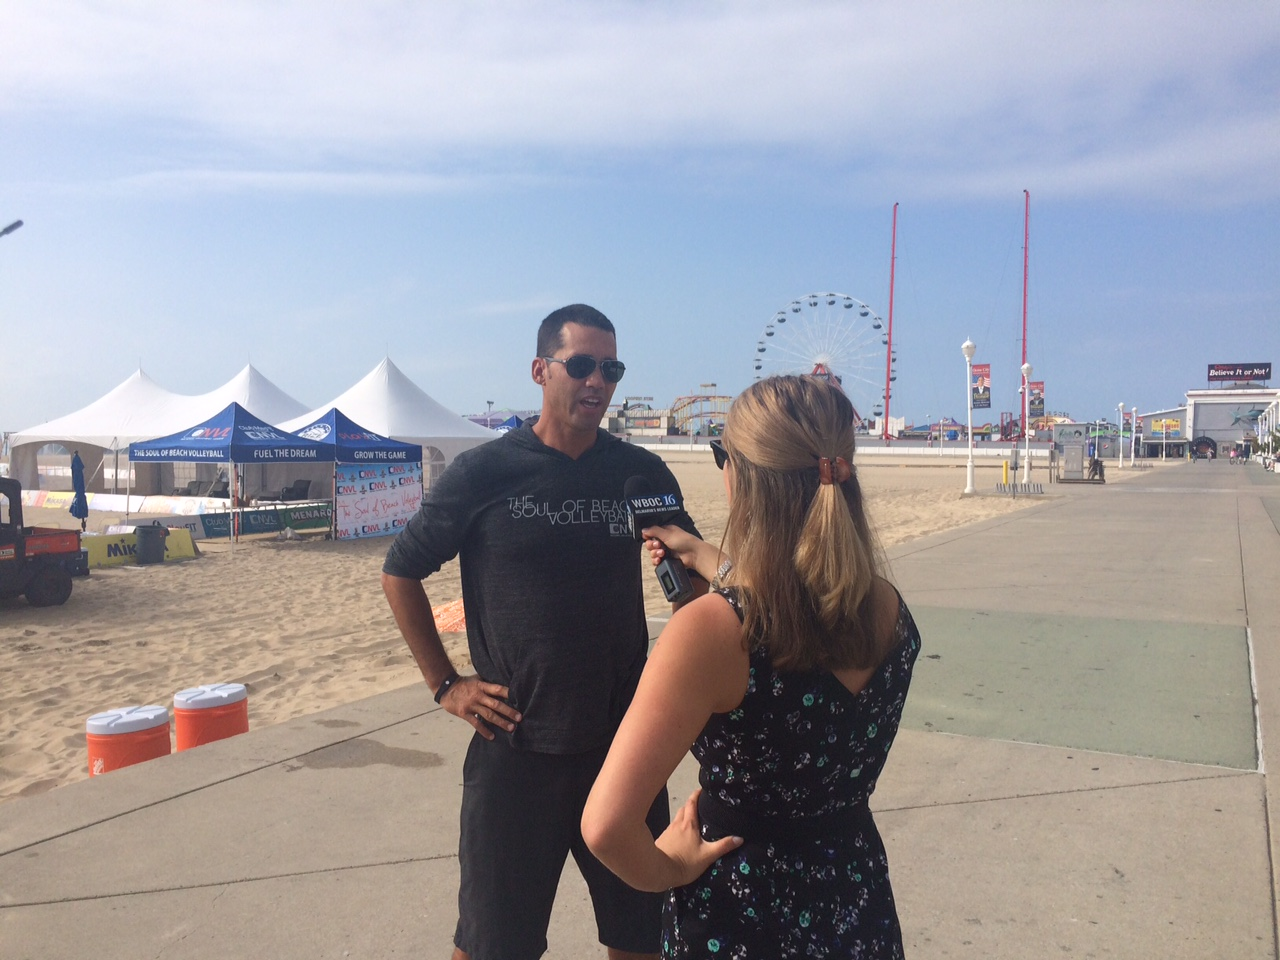 National Volleyball League Hosts Third Pro Tournament in Ocean City